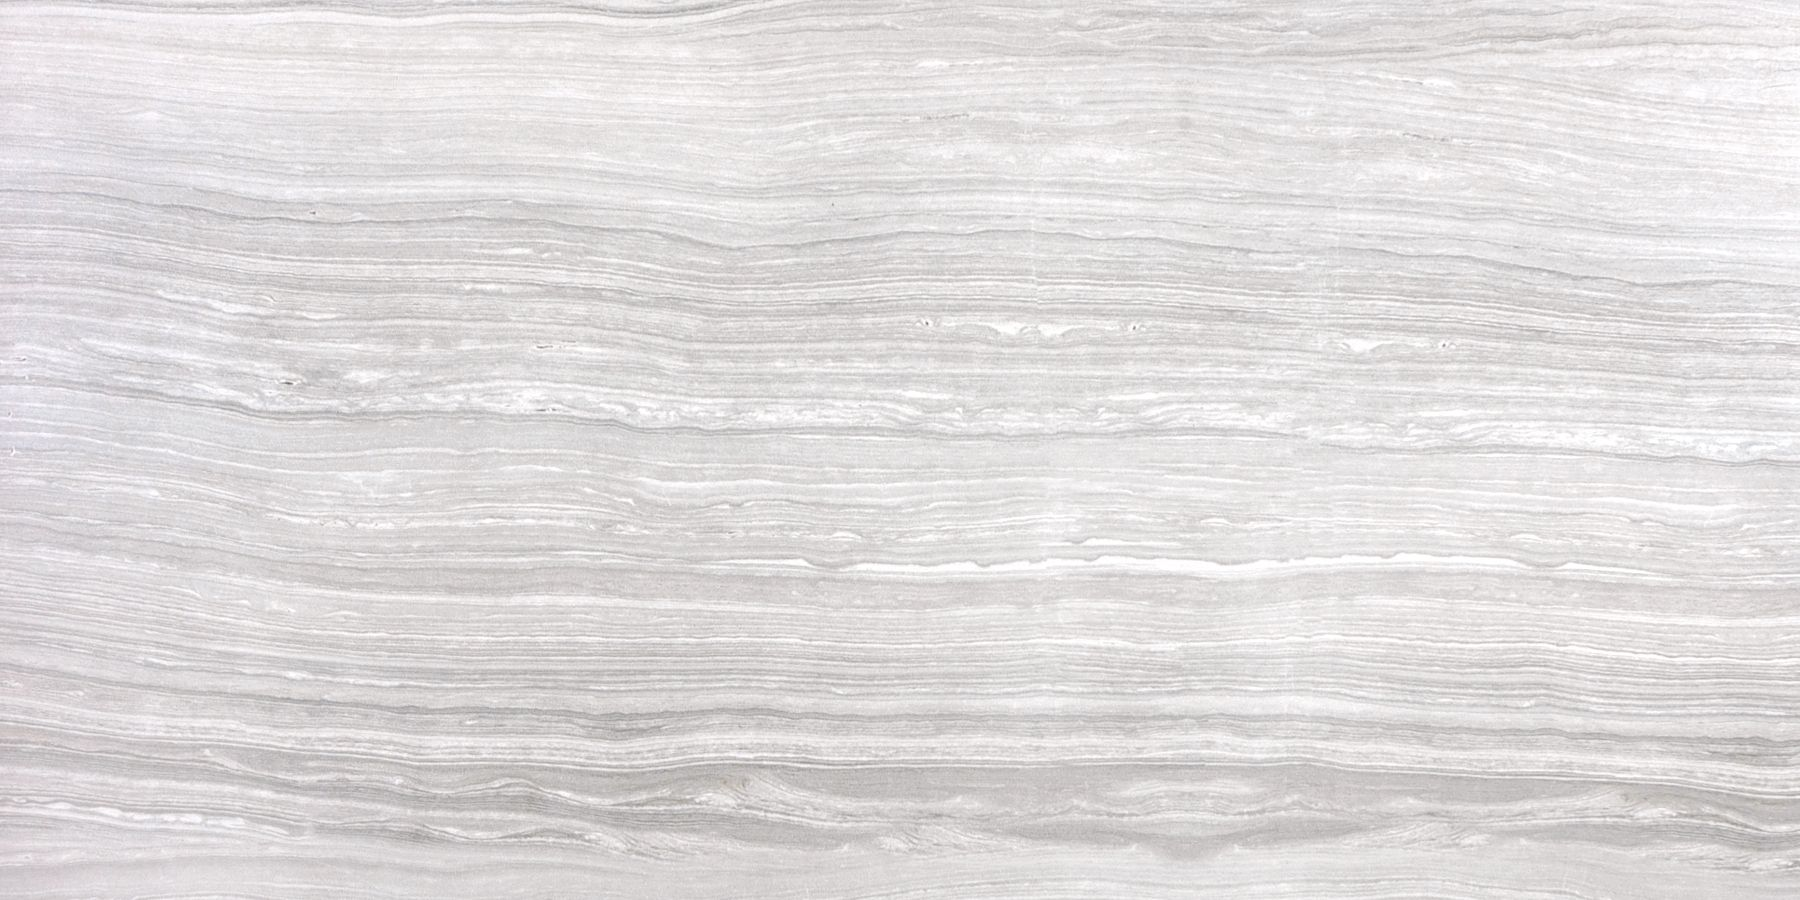 Anatolia tile eramosa ice turkish high definition porcelain www ceramic tileworks is your resource for porcelain tile in minnesota we also offer natural stone tile ceramic tile glass mosaic tile and natural stone dailygadgetfo Image collections